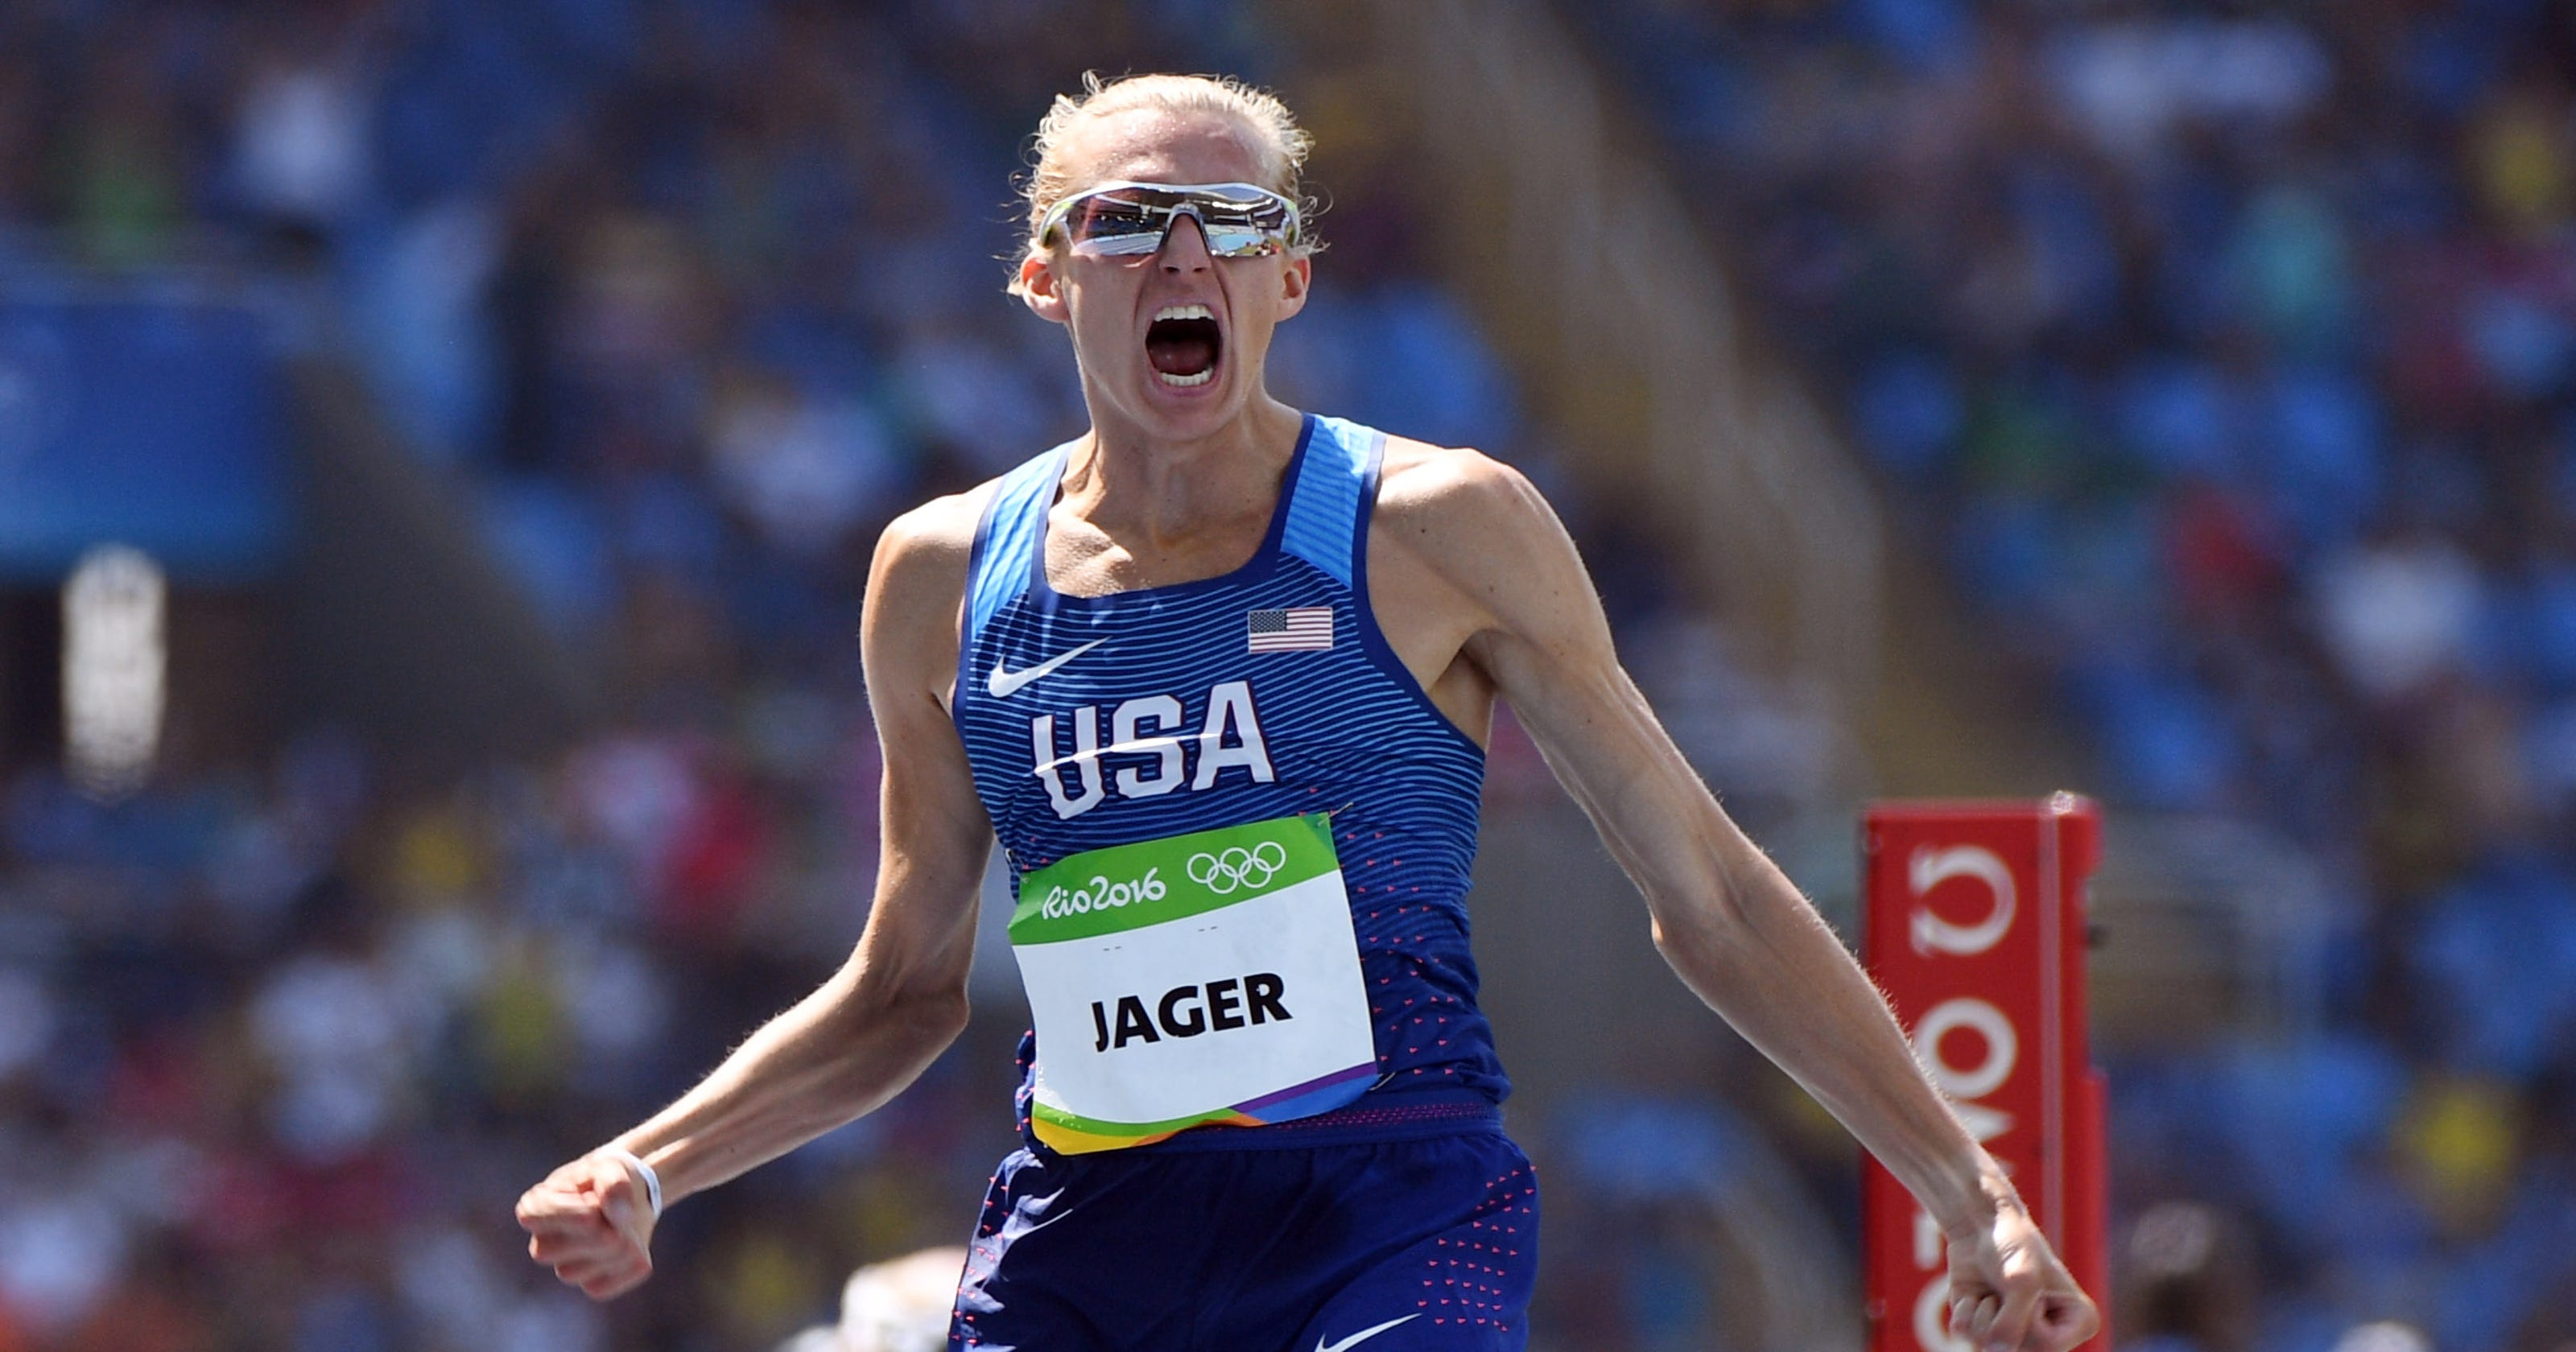 USA s Evan Jager wins silver medal in men s 3000 steeplechase at Rio  Olympics c627e93e2